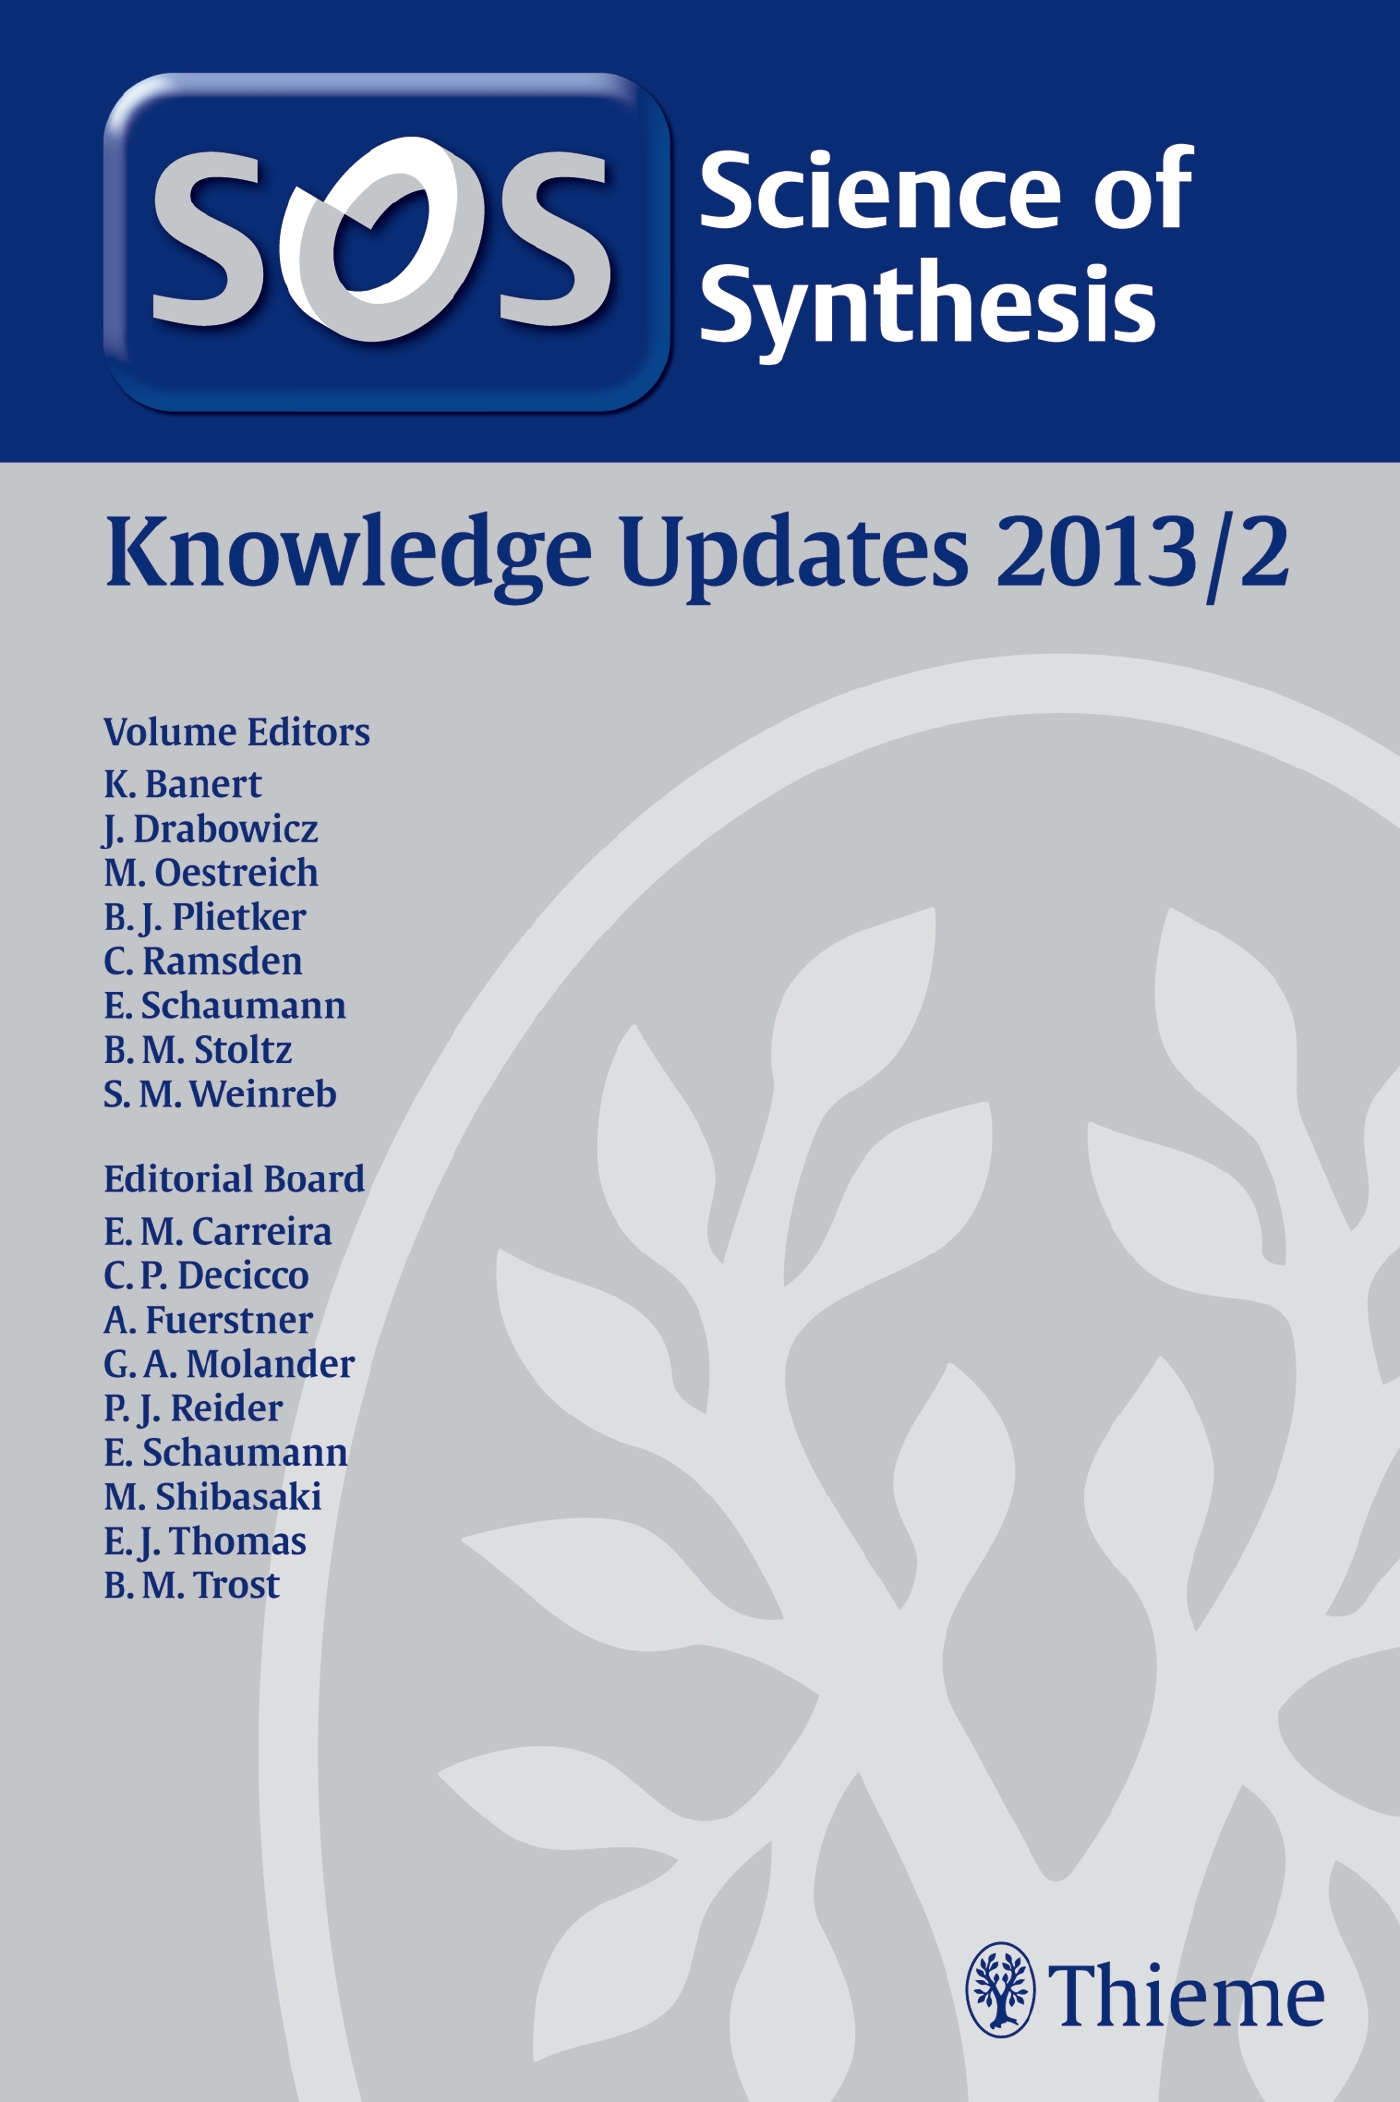 Science of Synthesis Knowledge Updates 2013 Vol. 2